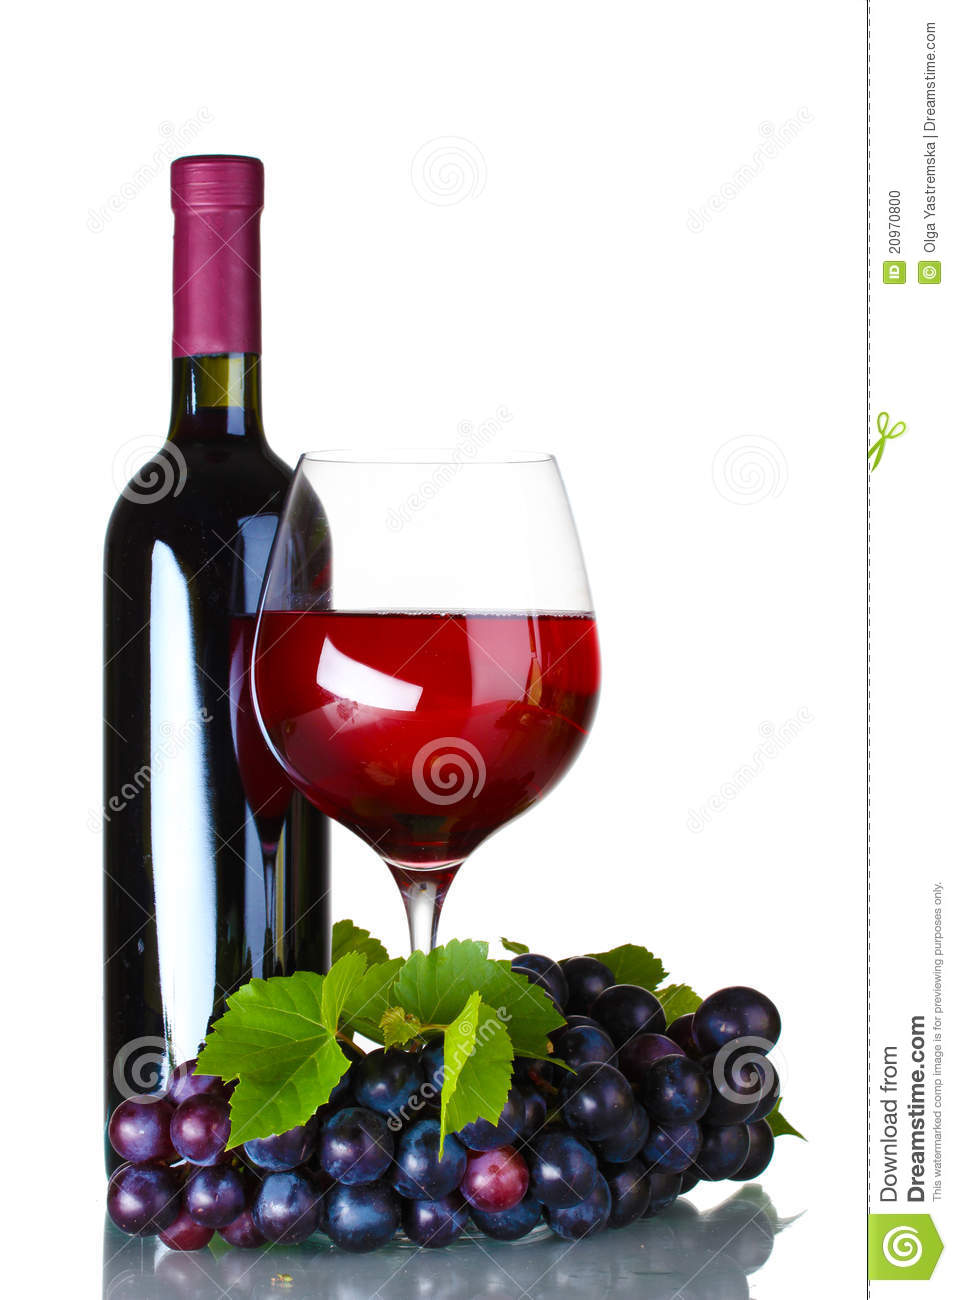 Ripe grapes wine glass and bottle of wine stock photo for Wine bottle glass